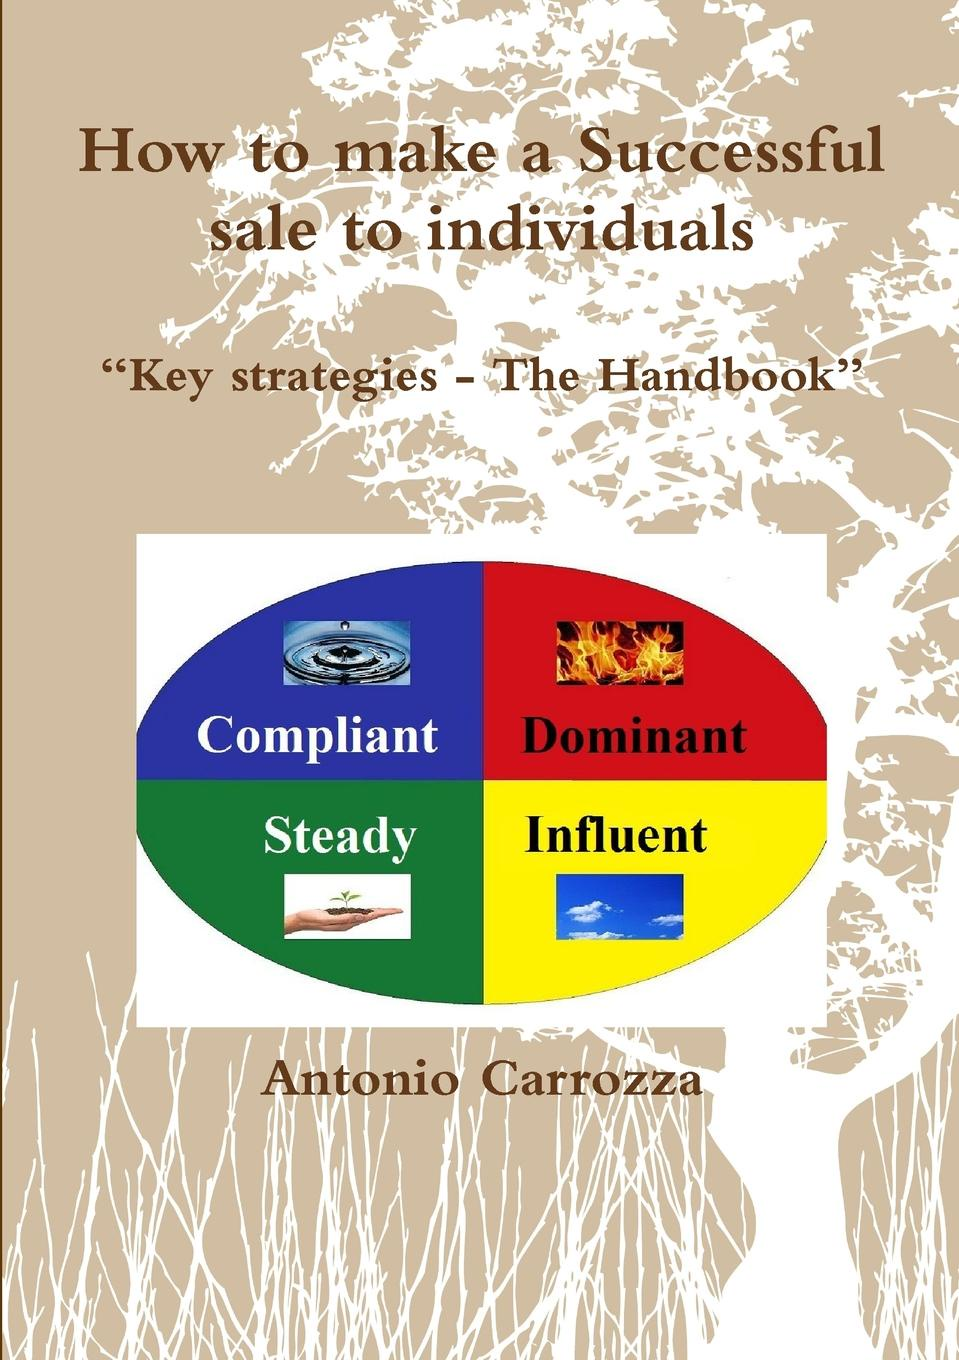 antonio carrozza How to make a Successful sale to individuals